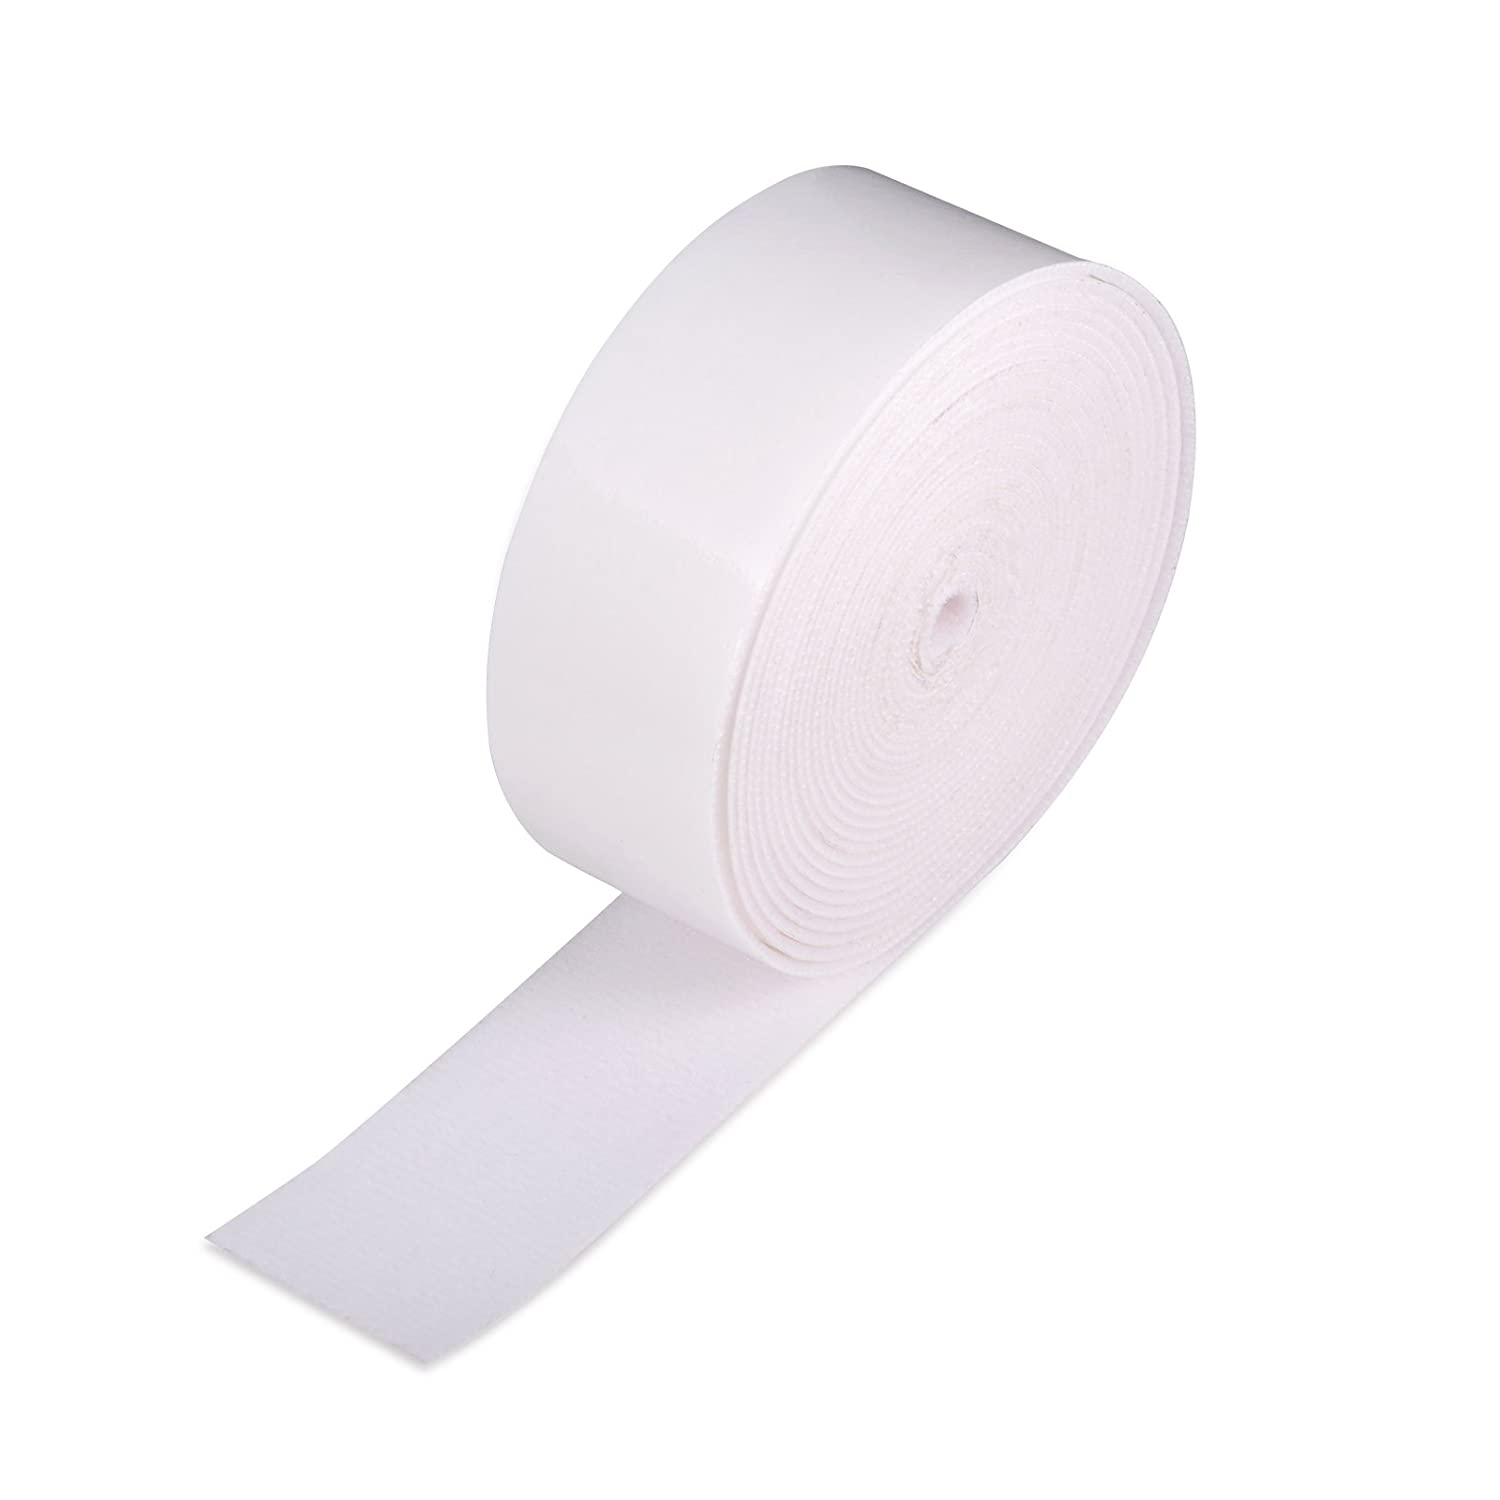 Winjun 5M Length White Self-Adhesive Soft Fiber Felt Roll for Fabric Edge Squeegee Accessories Vinyl Applicator